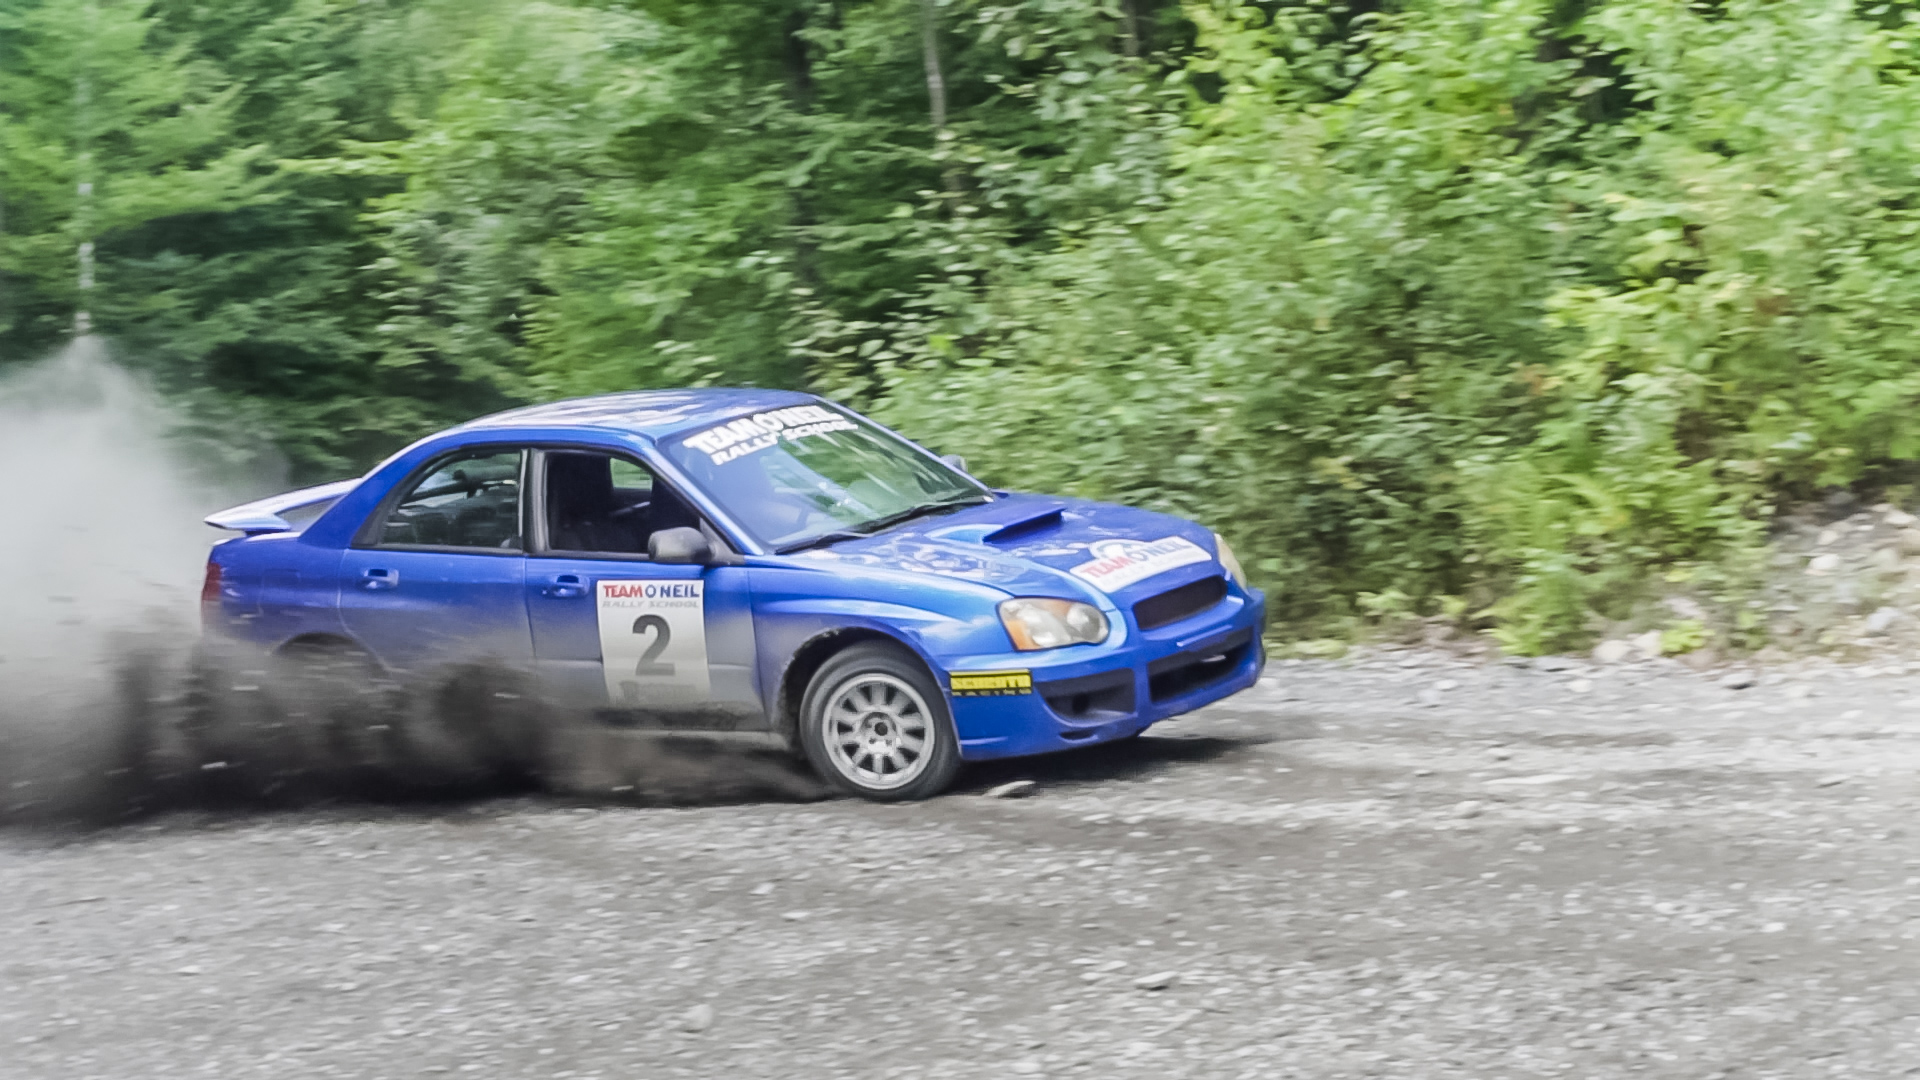 Rally School track pic